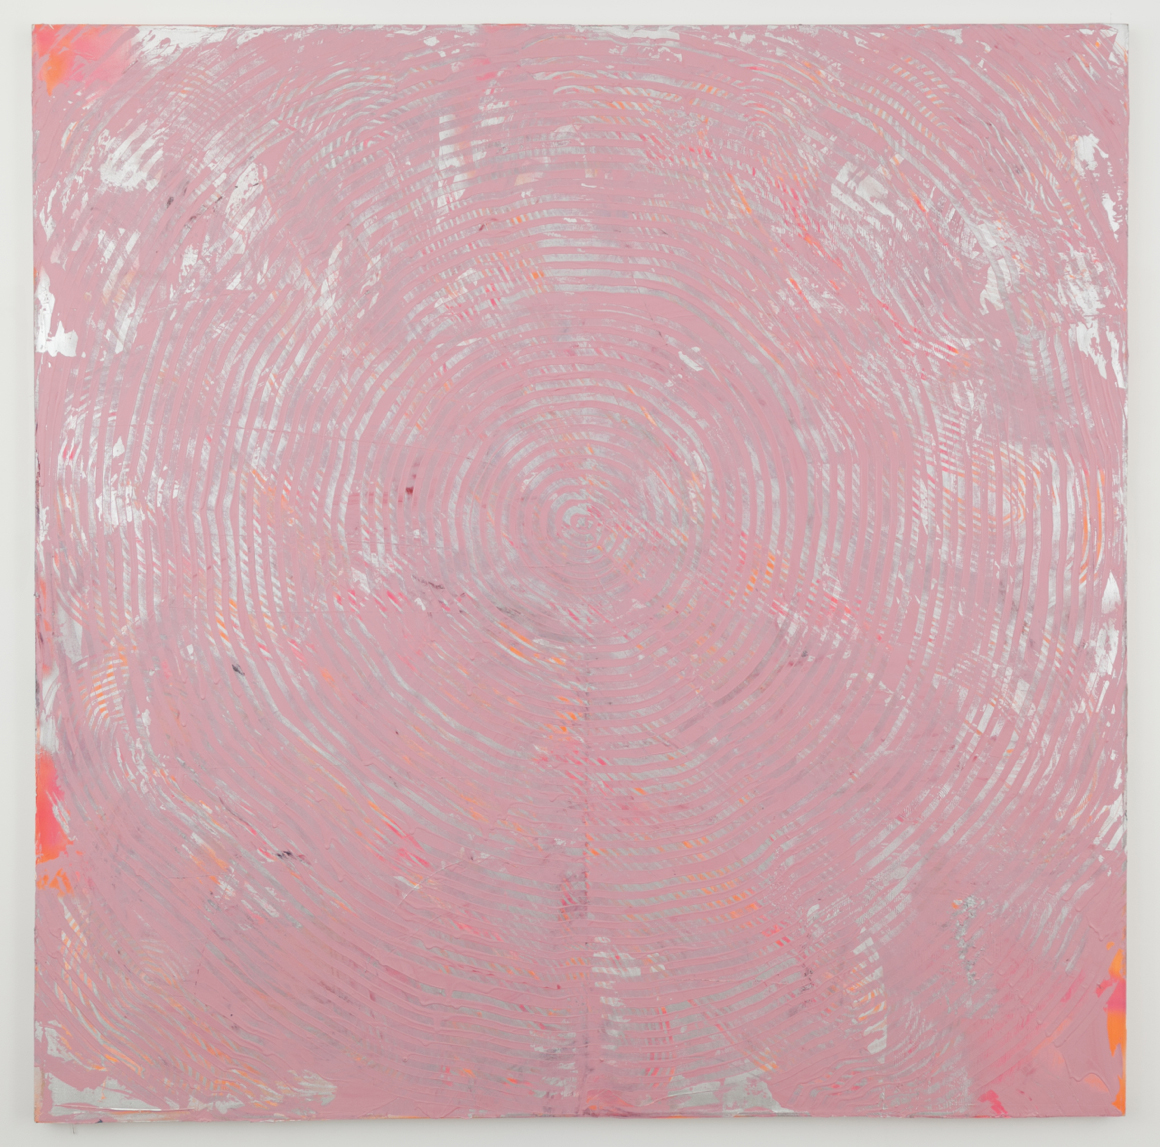 <p><em>Pink and Silver</em><span class='media'>acrylic and spray paint on canvas</span>72 x 72 in  (182.9 x 182.9 cm)<br>2014<br><a class='inquire' href='mailto:info@gildargallery.com?subject=Artwork Inquiry ABAT0006&body=I am interested in finding out more about Pink and Silver by Adam Bateman'>Inquire</a></p>